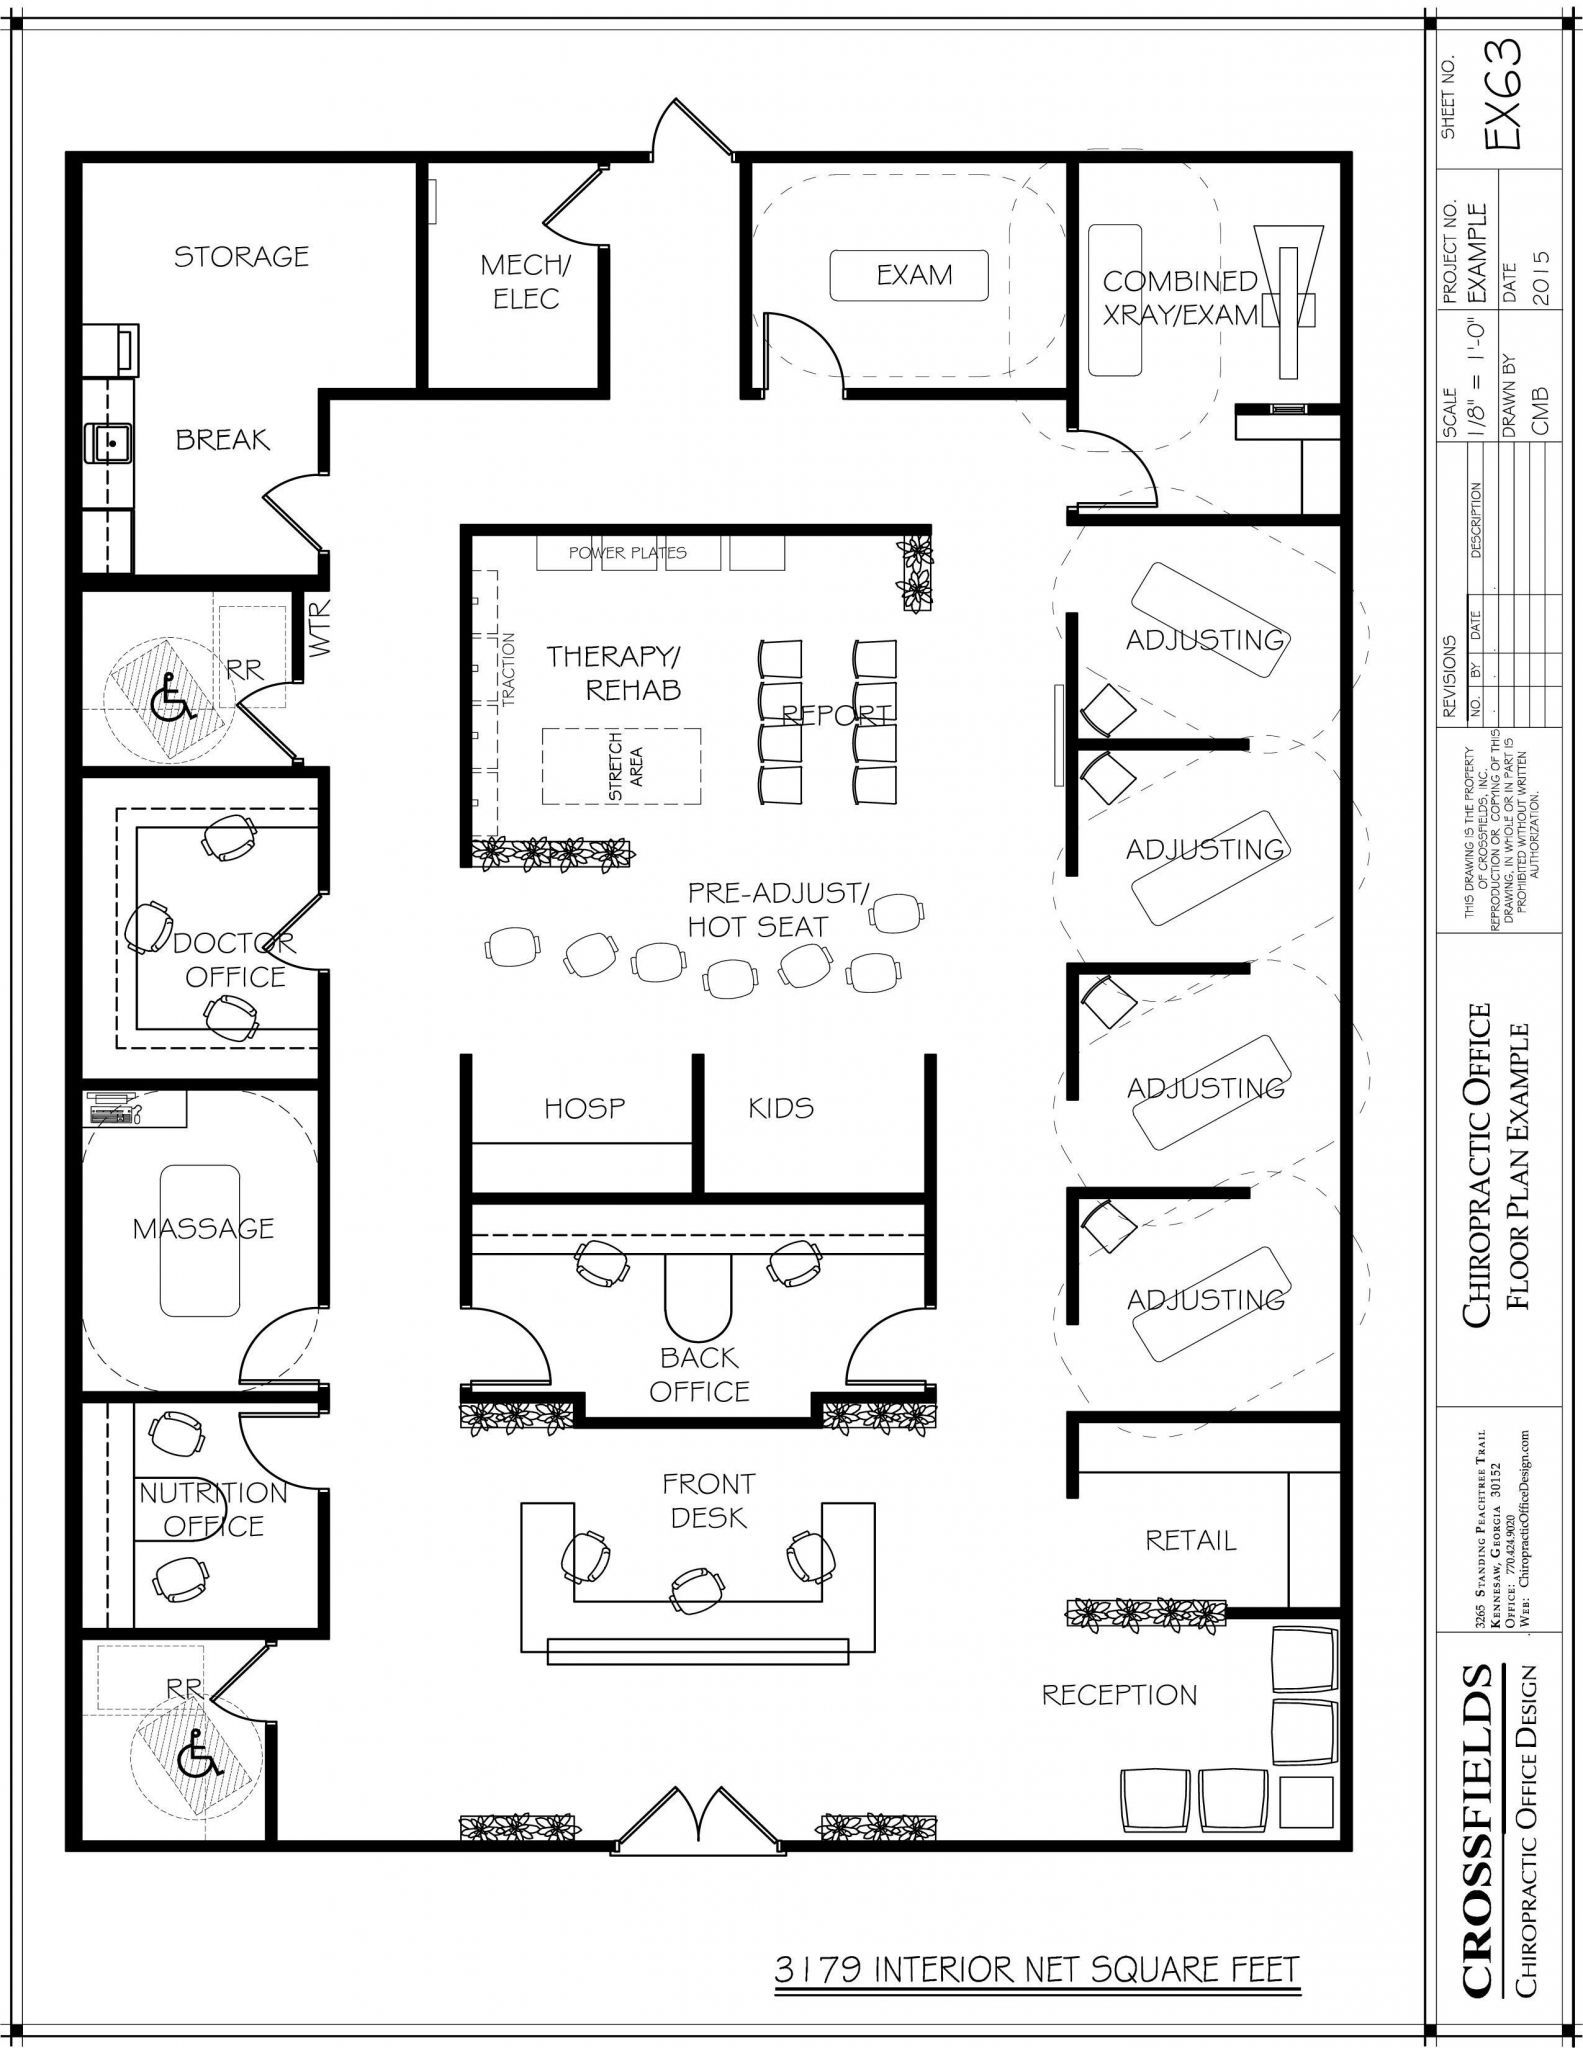 Wells Fargo Floor Plan In 2020 Chiropractic Office Design Office Floor Plan Doctor Office Design